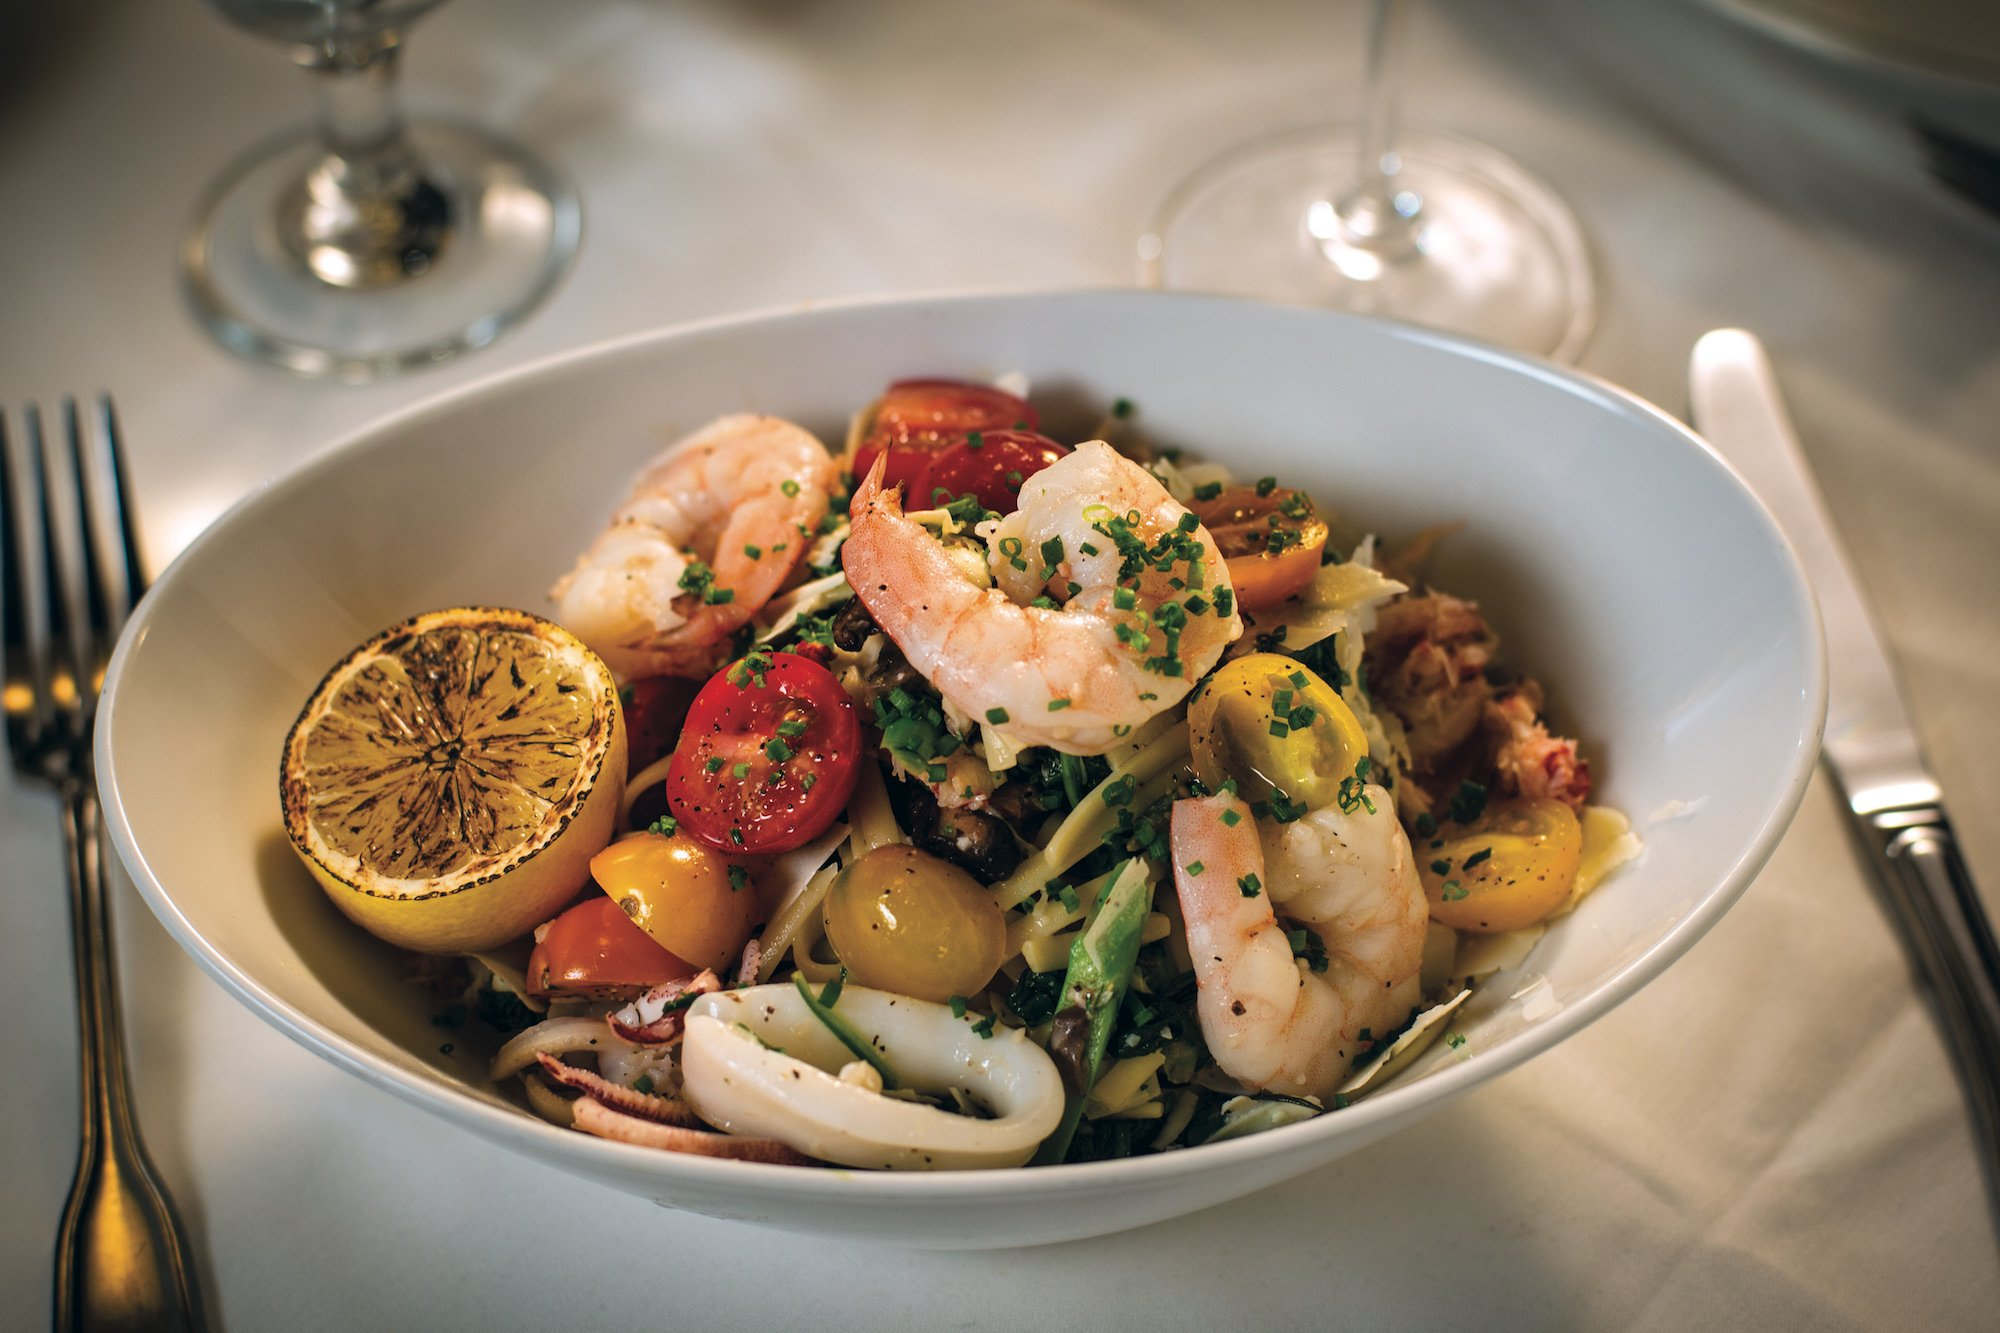 Shrimp pasta dish with heirloom tomatoes and chives, served with a fresh lemon ready to squeeze